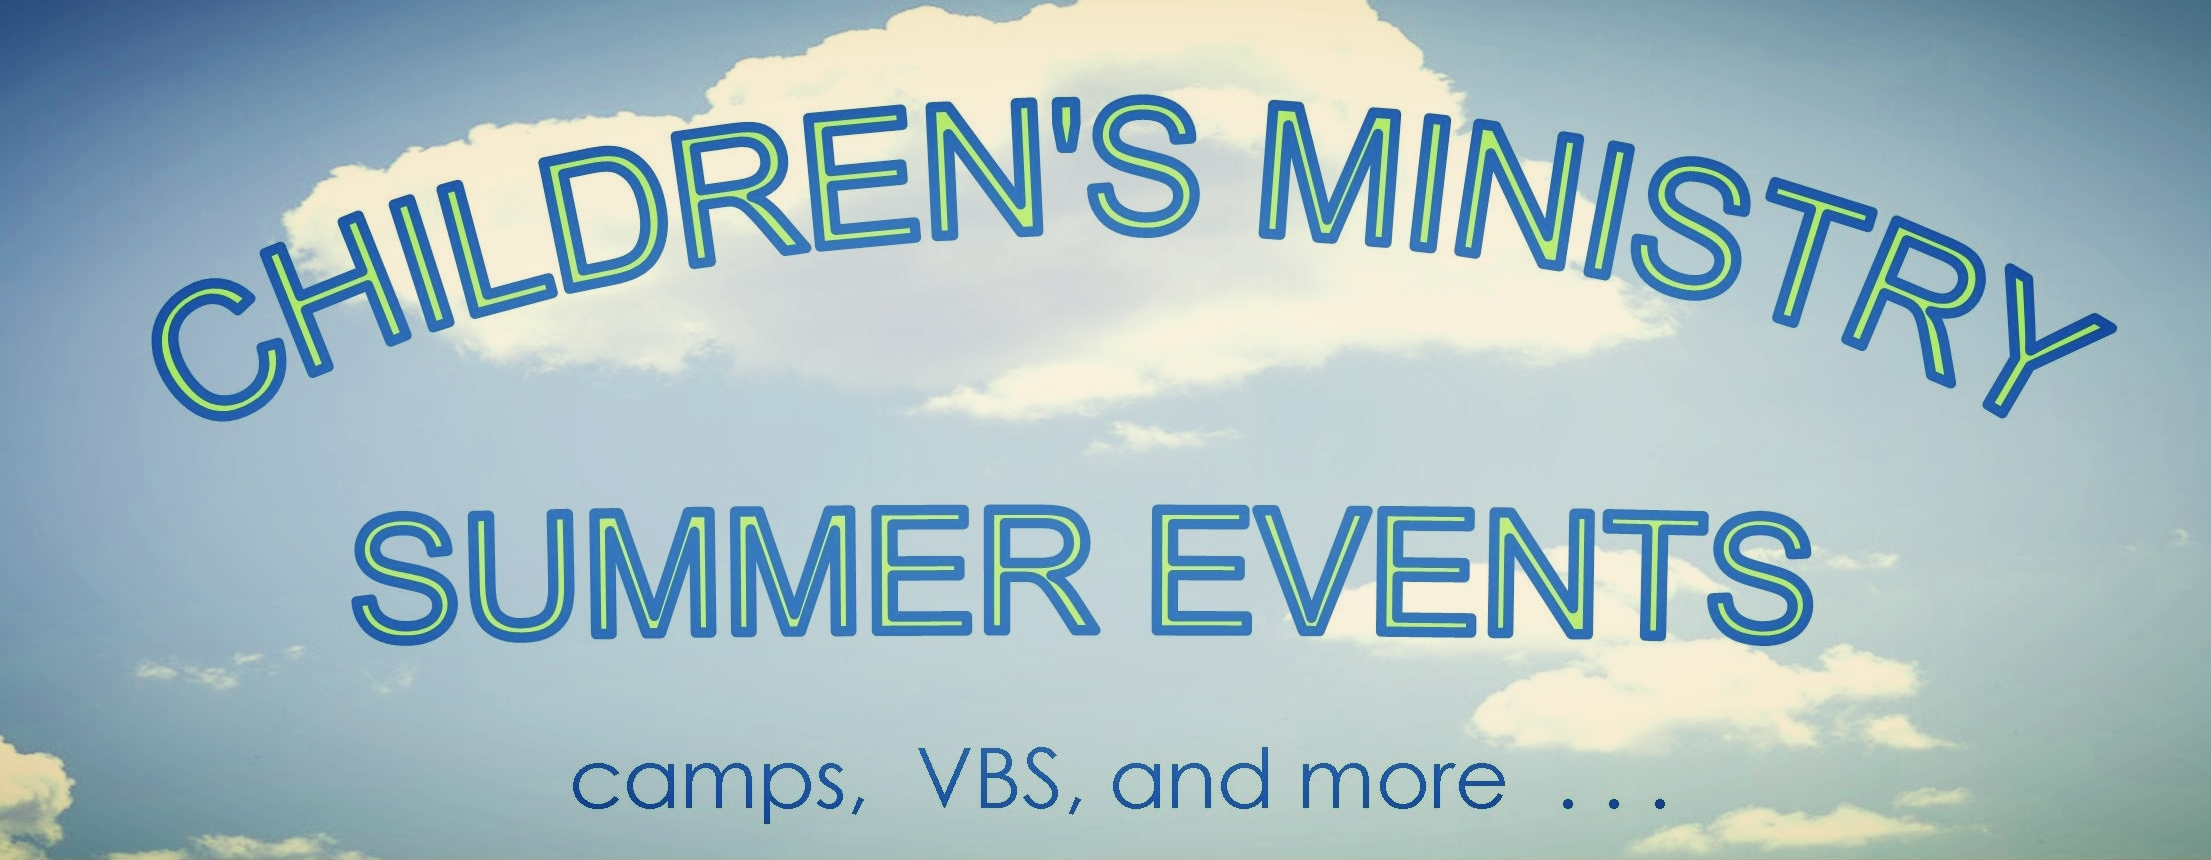 Children's Ministry Summer Events 011917-2.jpg